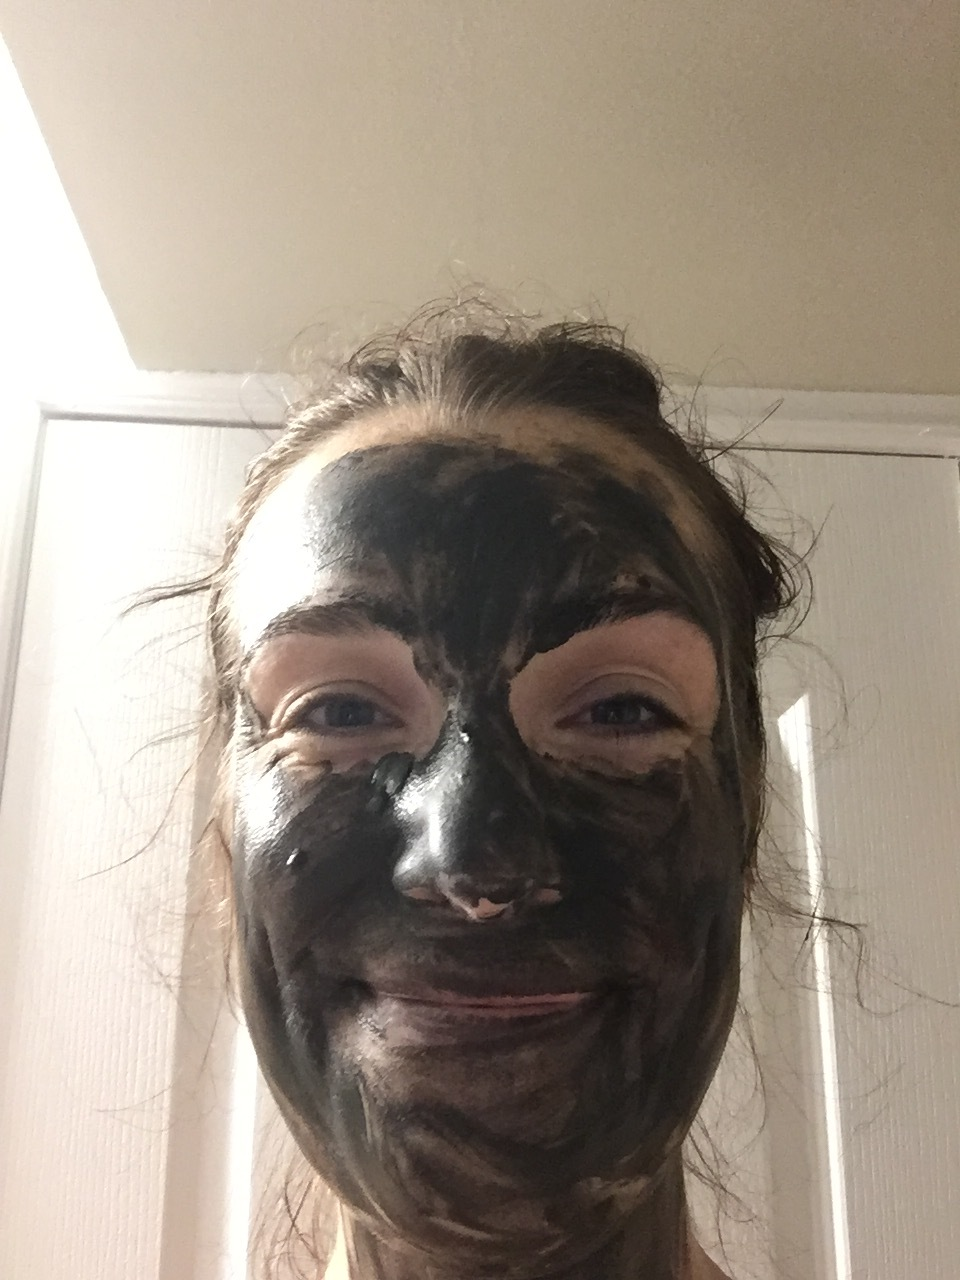 Wearing Northlore's Plains Mud Mask.